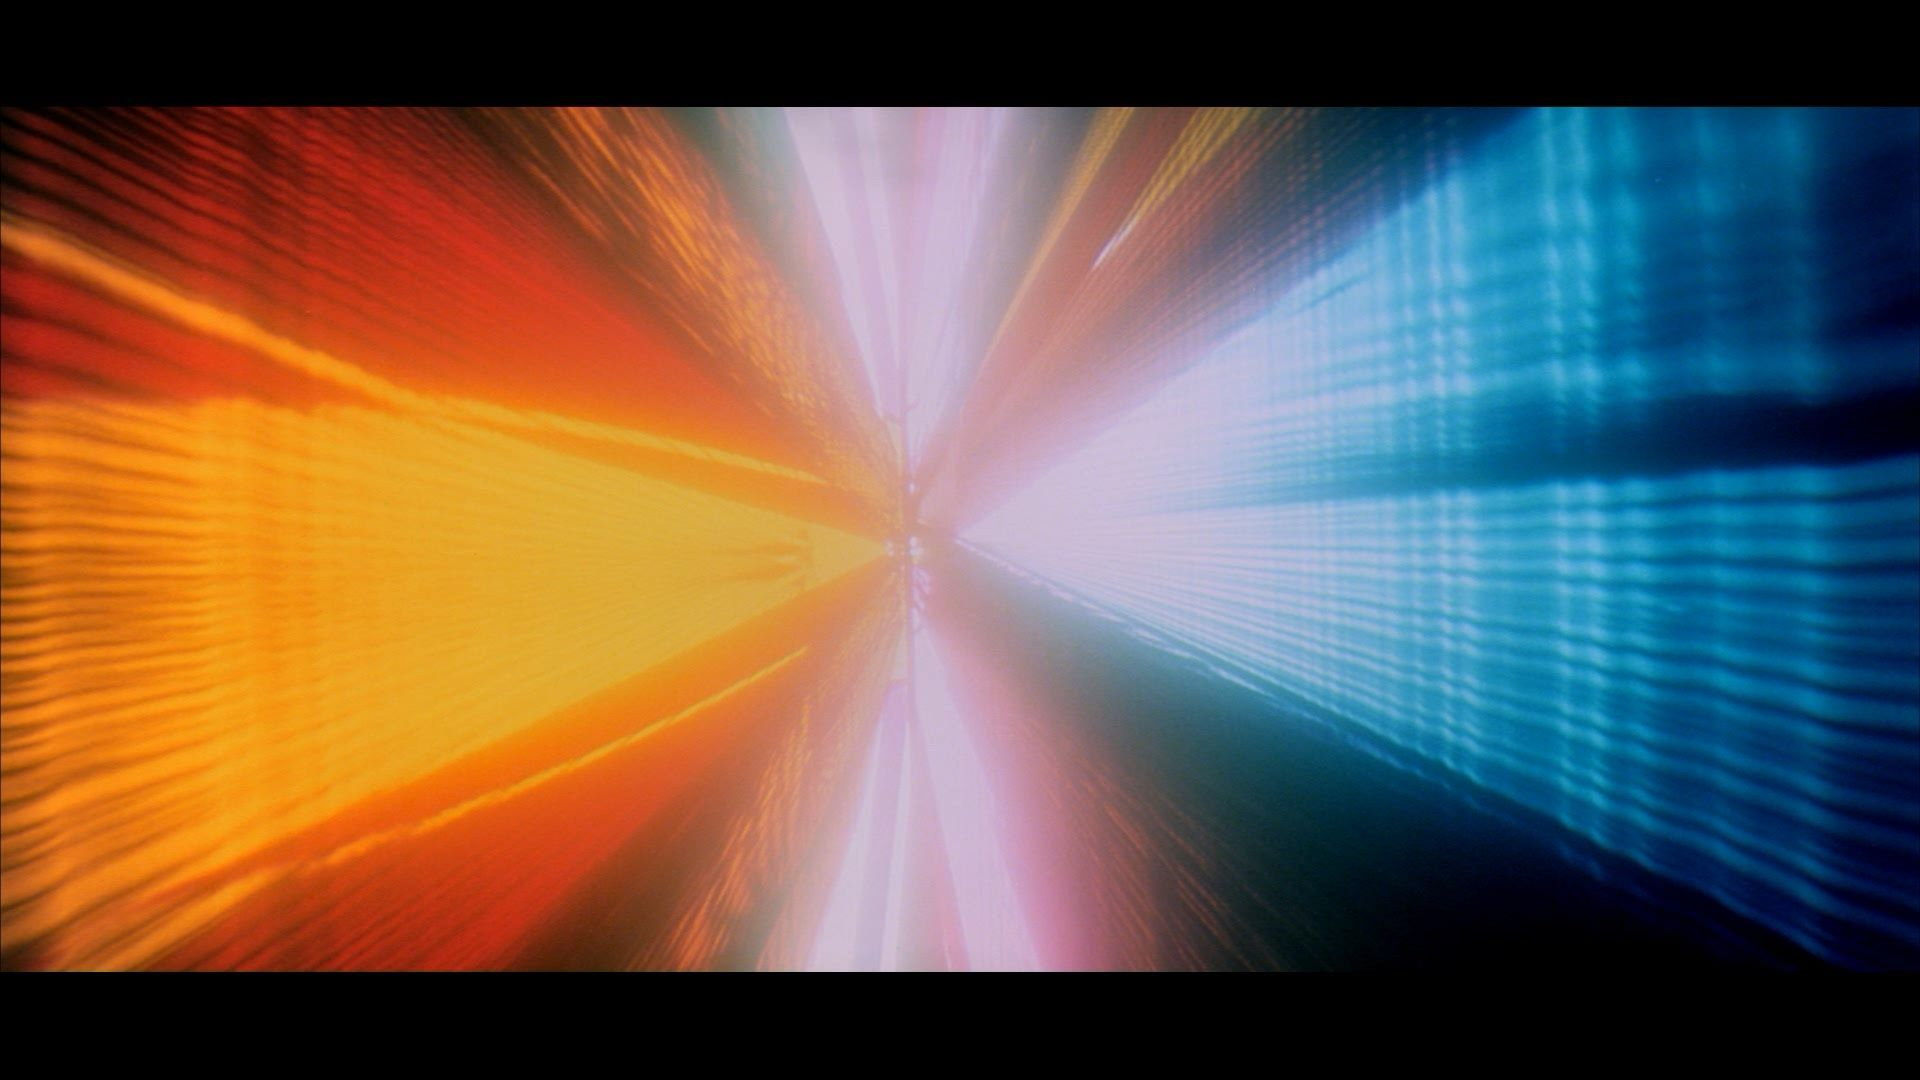 Wallpapers From Movie Stills In 2020 2001 A Space Odyssey Light